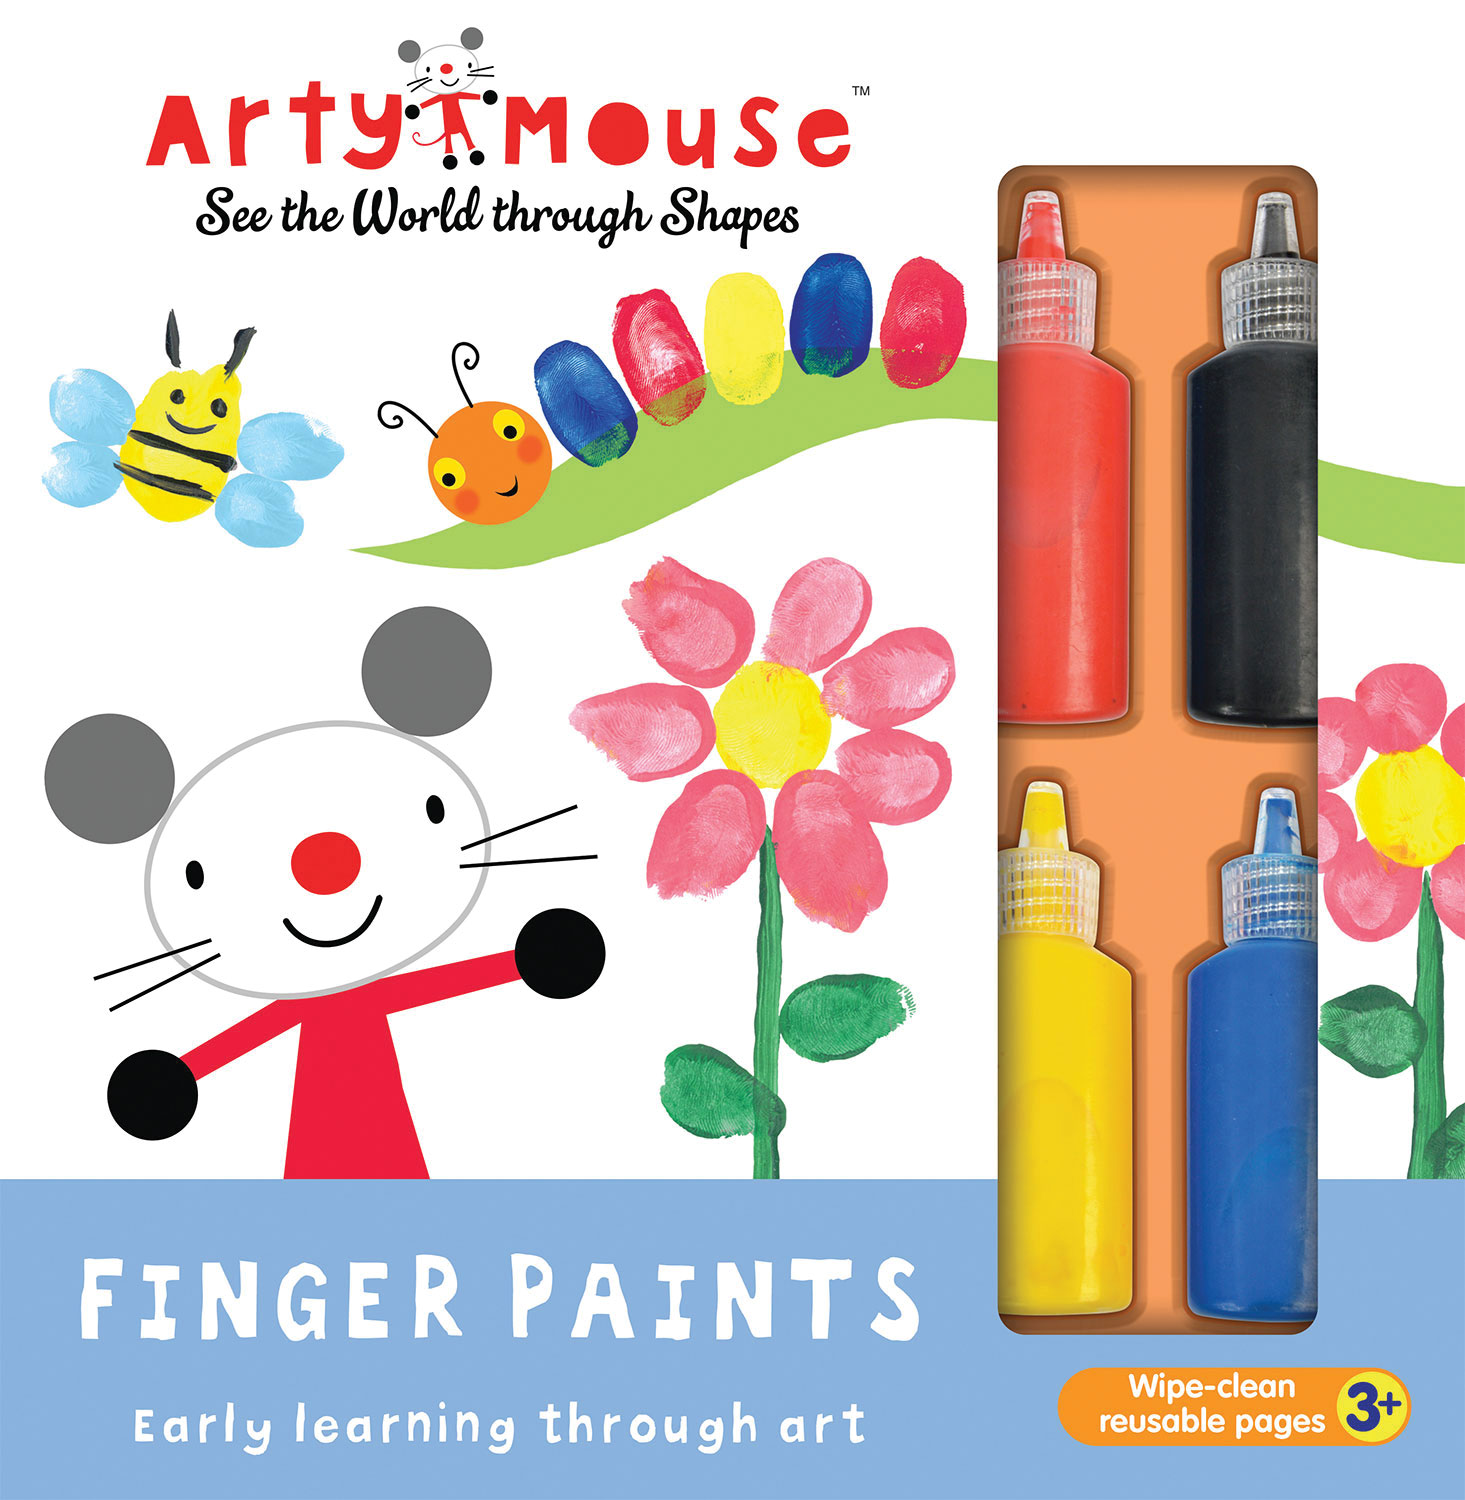 ARTY MOUSE FINGER PAINTS